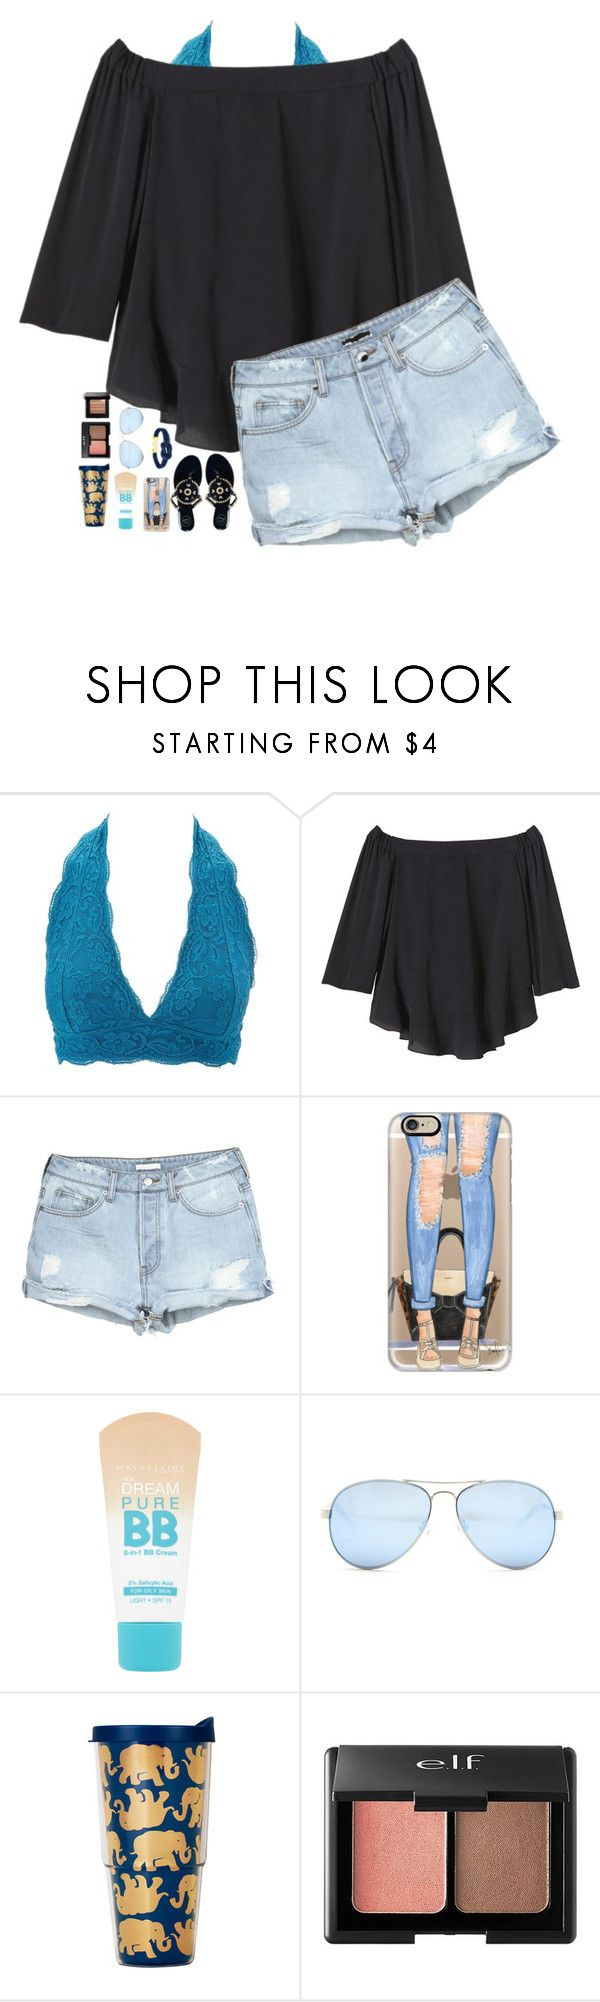 """to the moon&back"" by nc-preppy-living ❤ liked on Polyvore featuring Charlotte Russe, Rebecca Taylor, Jack Rogers, Casetify, Maybelline, GUESS, Lilly Pulitzer and Bobbi Brown Cosmetics"